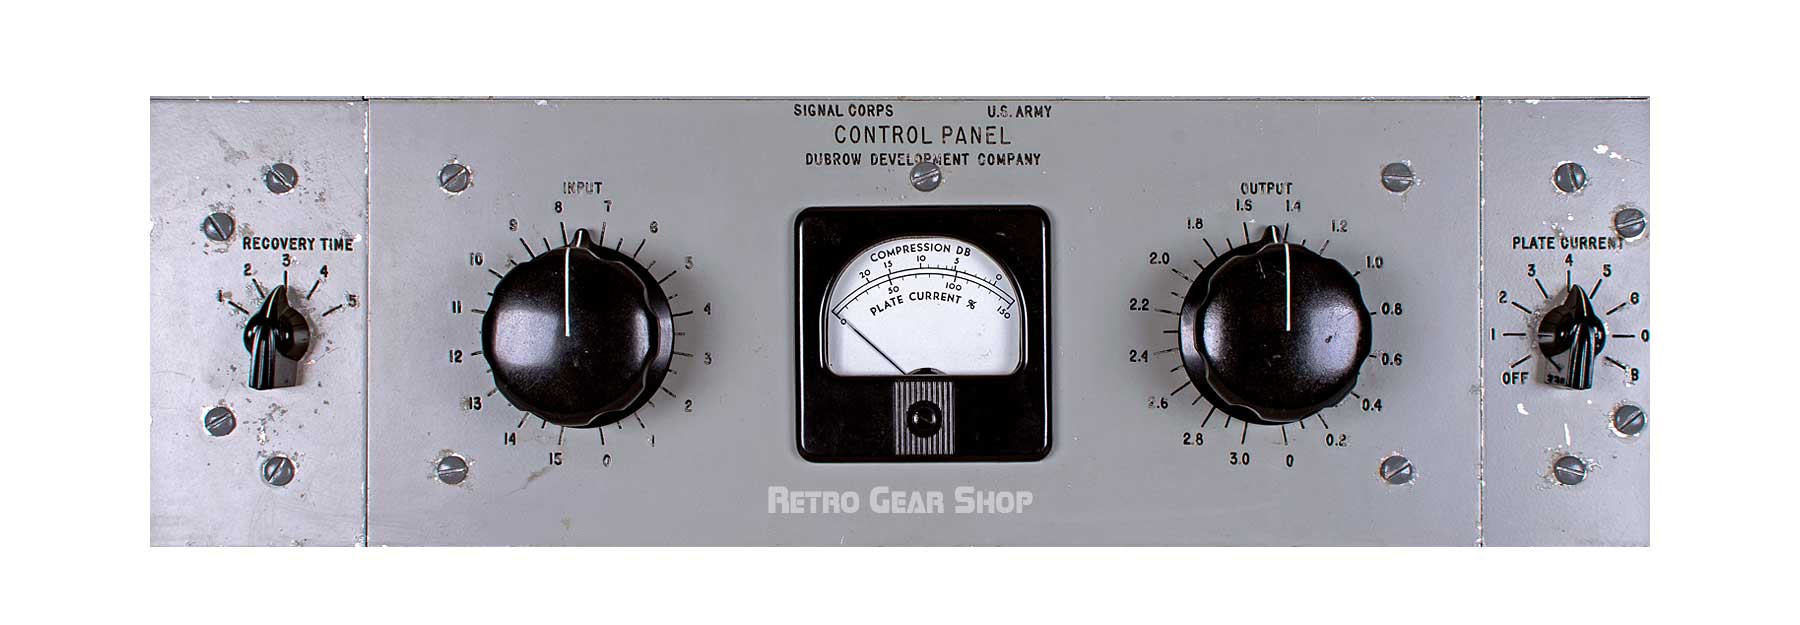 Signal Corps AF Amplifier AM-186A/FR Middle Front